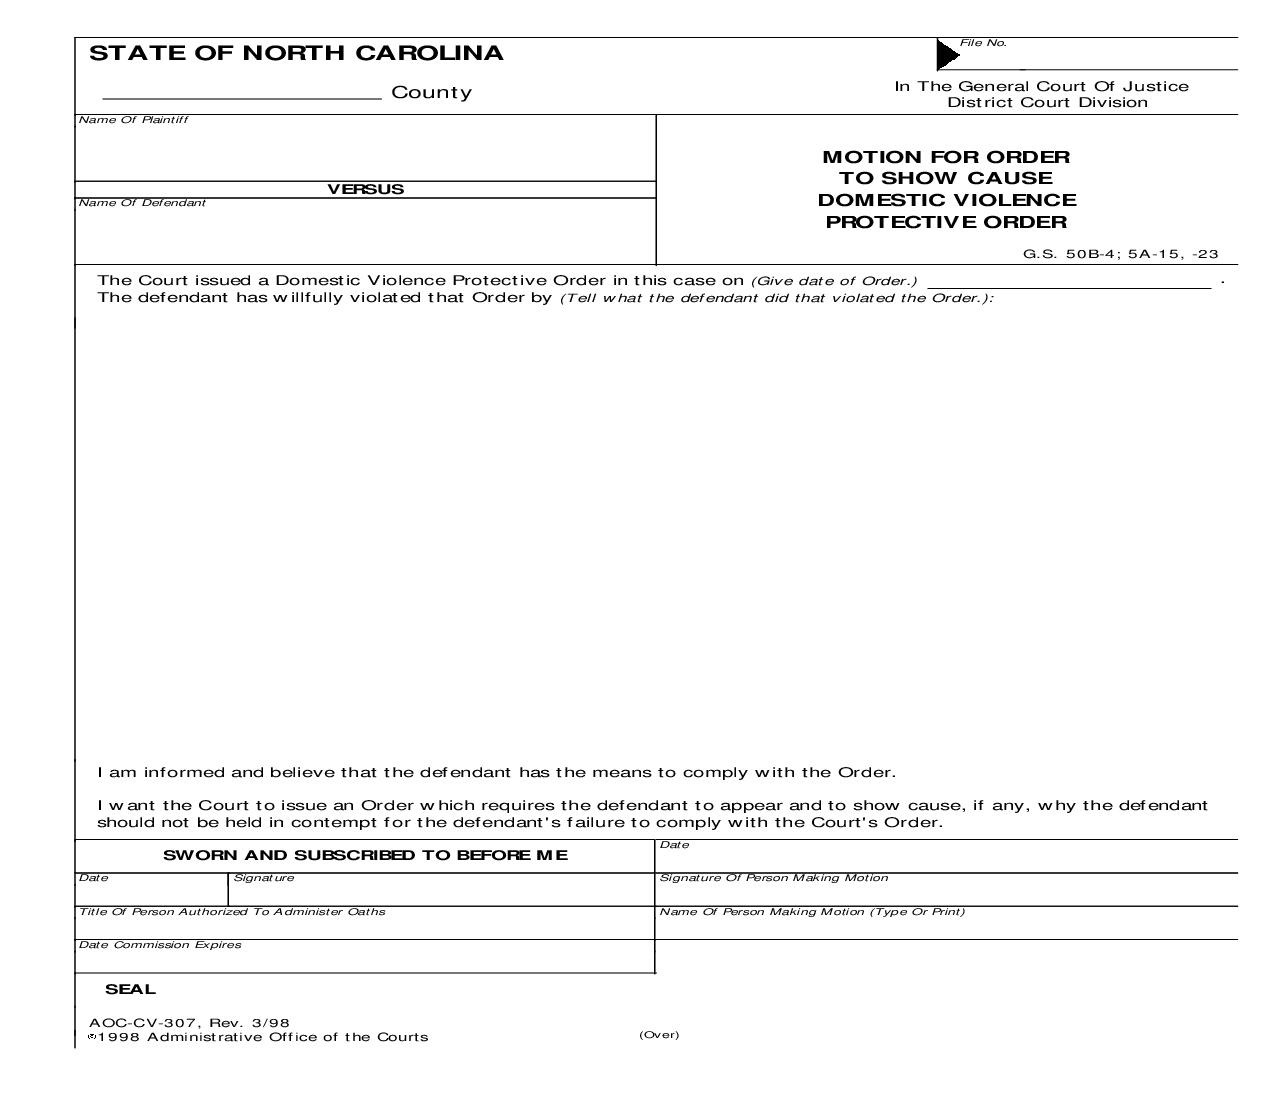 Motion For Order To Show Cause Domestic Violence Protective Order {CV-307} | Pdf Fpdf Doc Docx | North Carolina